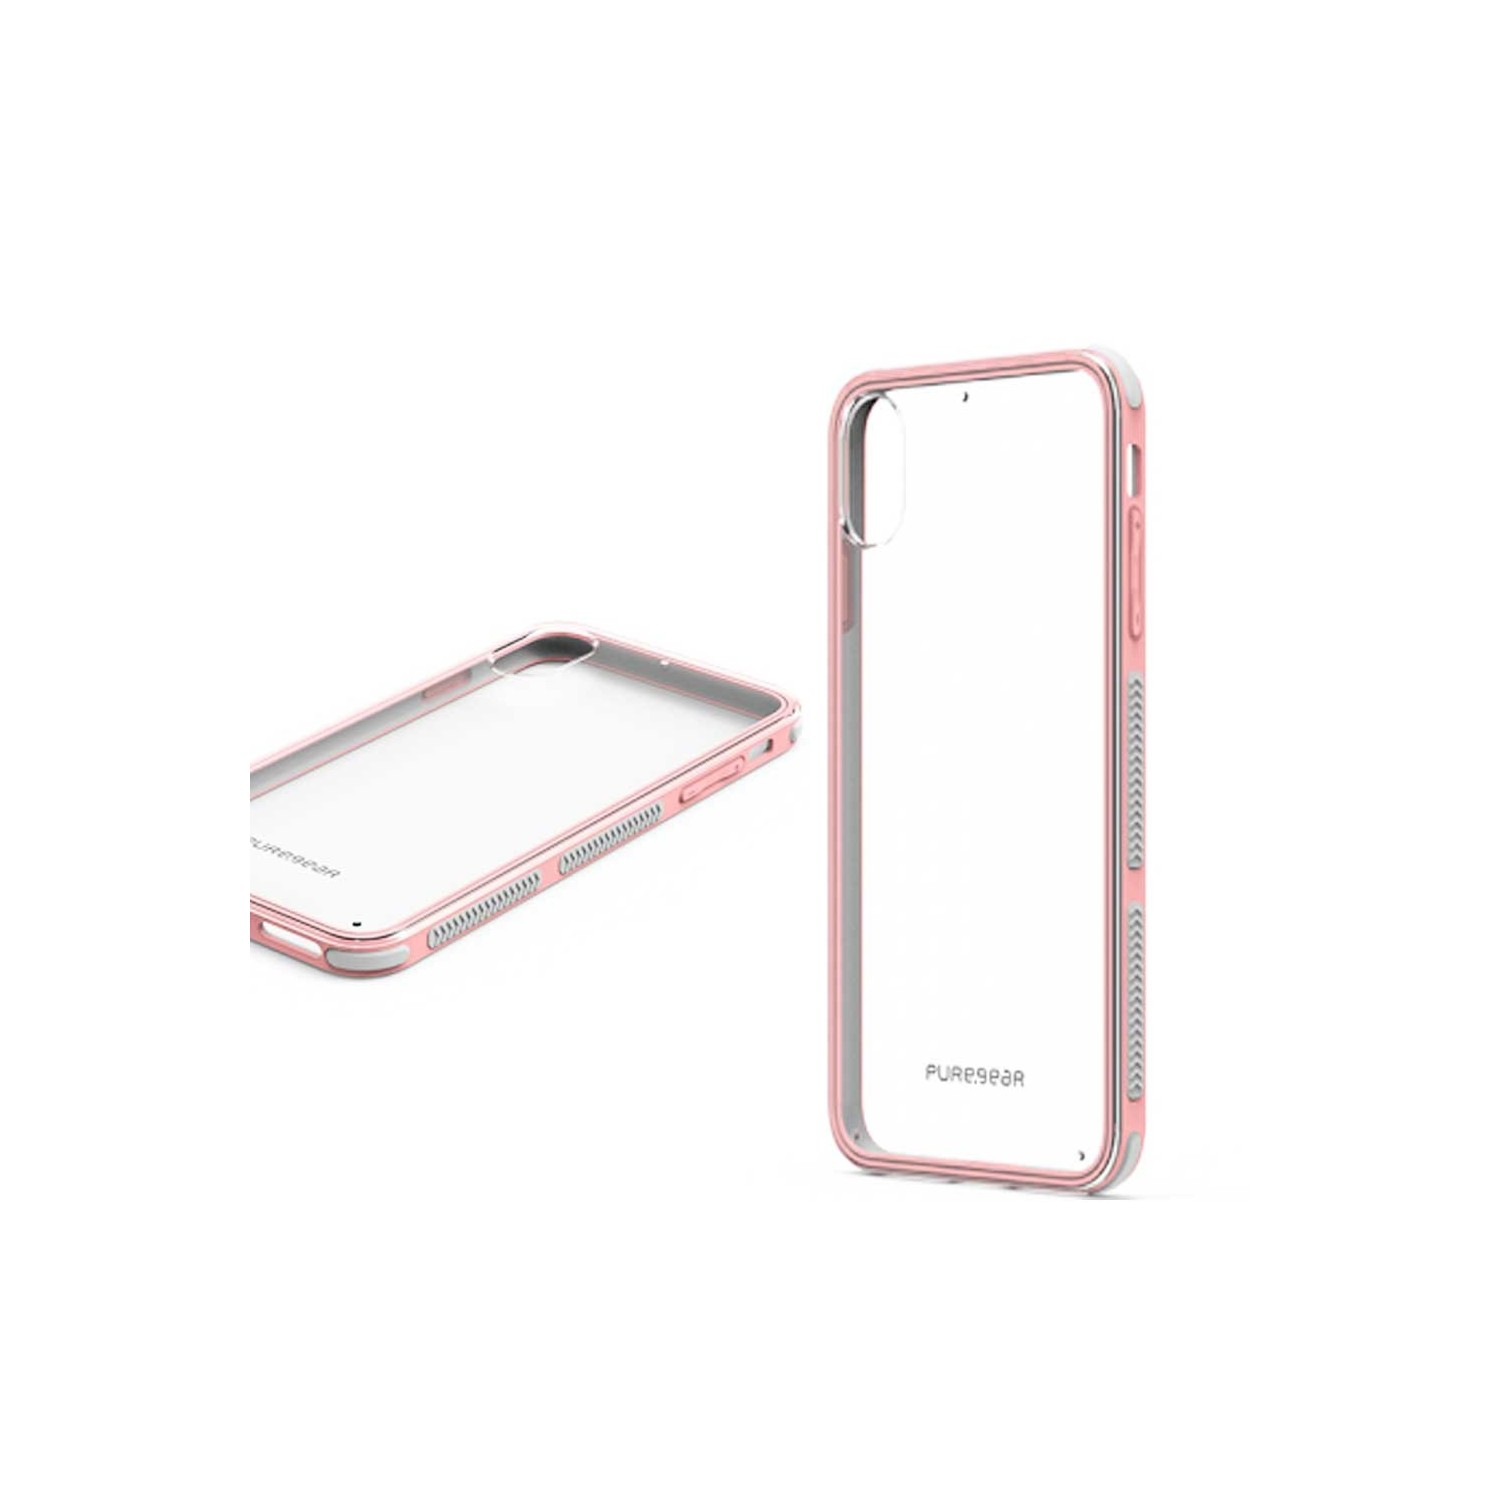 Case - Dualtek Clear Puregear for iPhone Xs Max - Clear / Pink